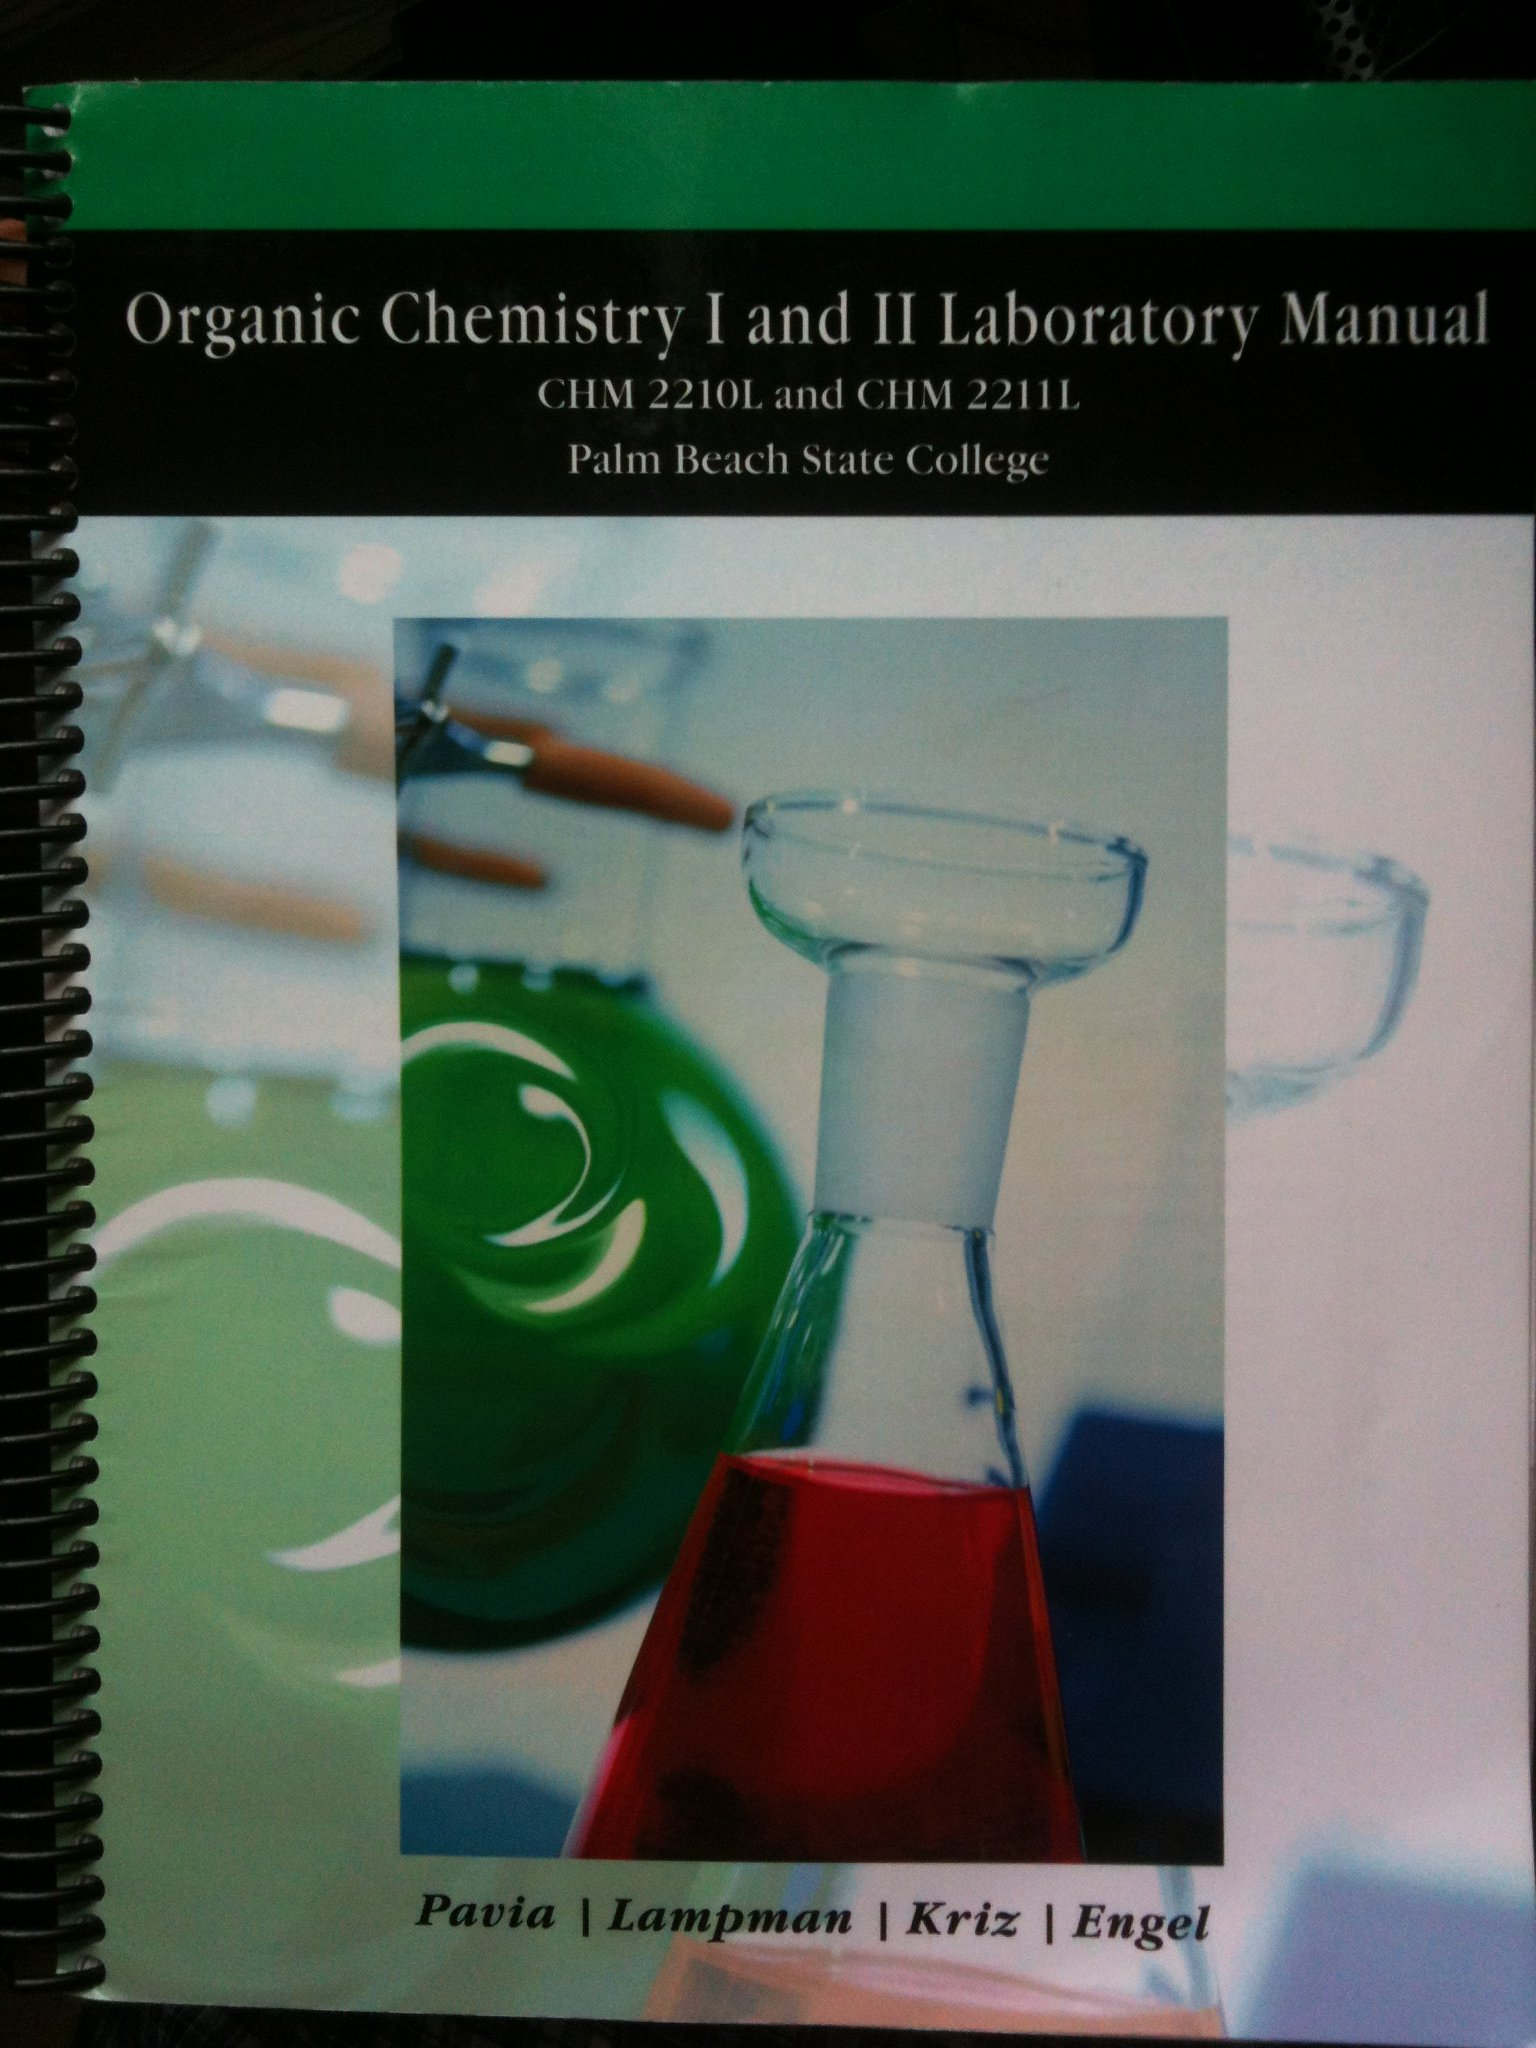 organic chemistry ii lab report Other than the laboratory manual, the sources below has also contributed in making this report : chemistry notes, chapter 4 : hydrocarbons part 1 and 2 by miss shyamala a personal book references, essential chemistry spm, longman publication, 2009.